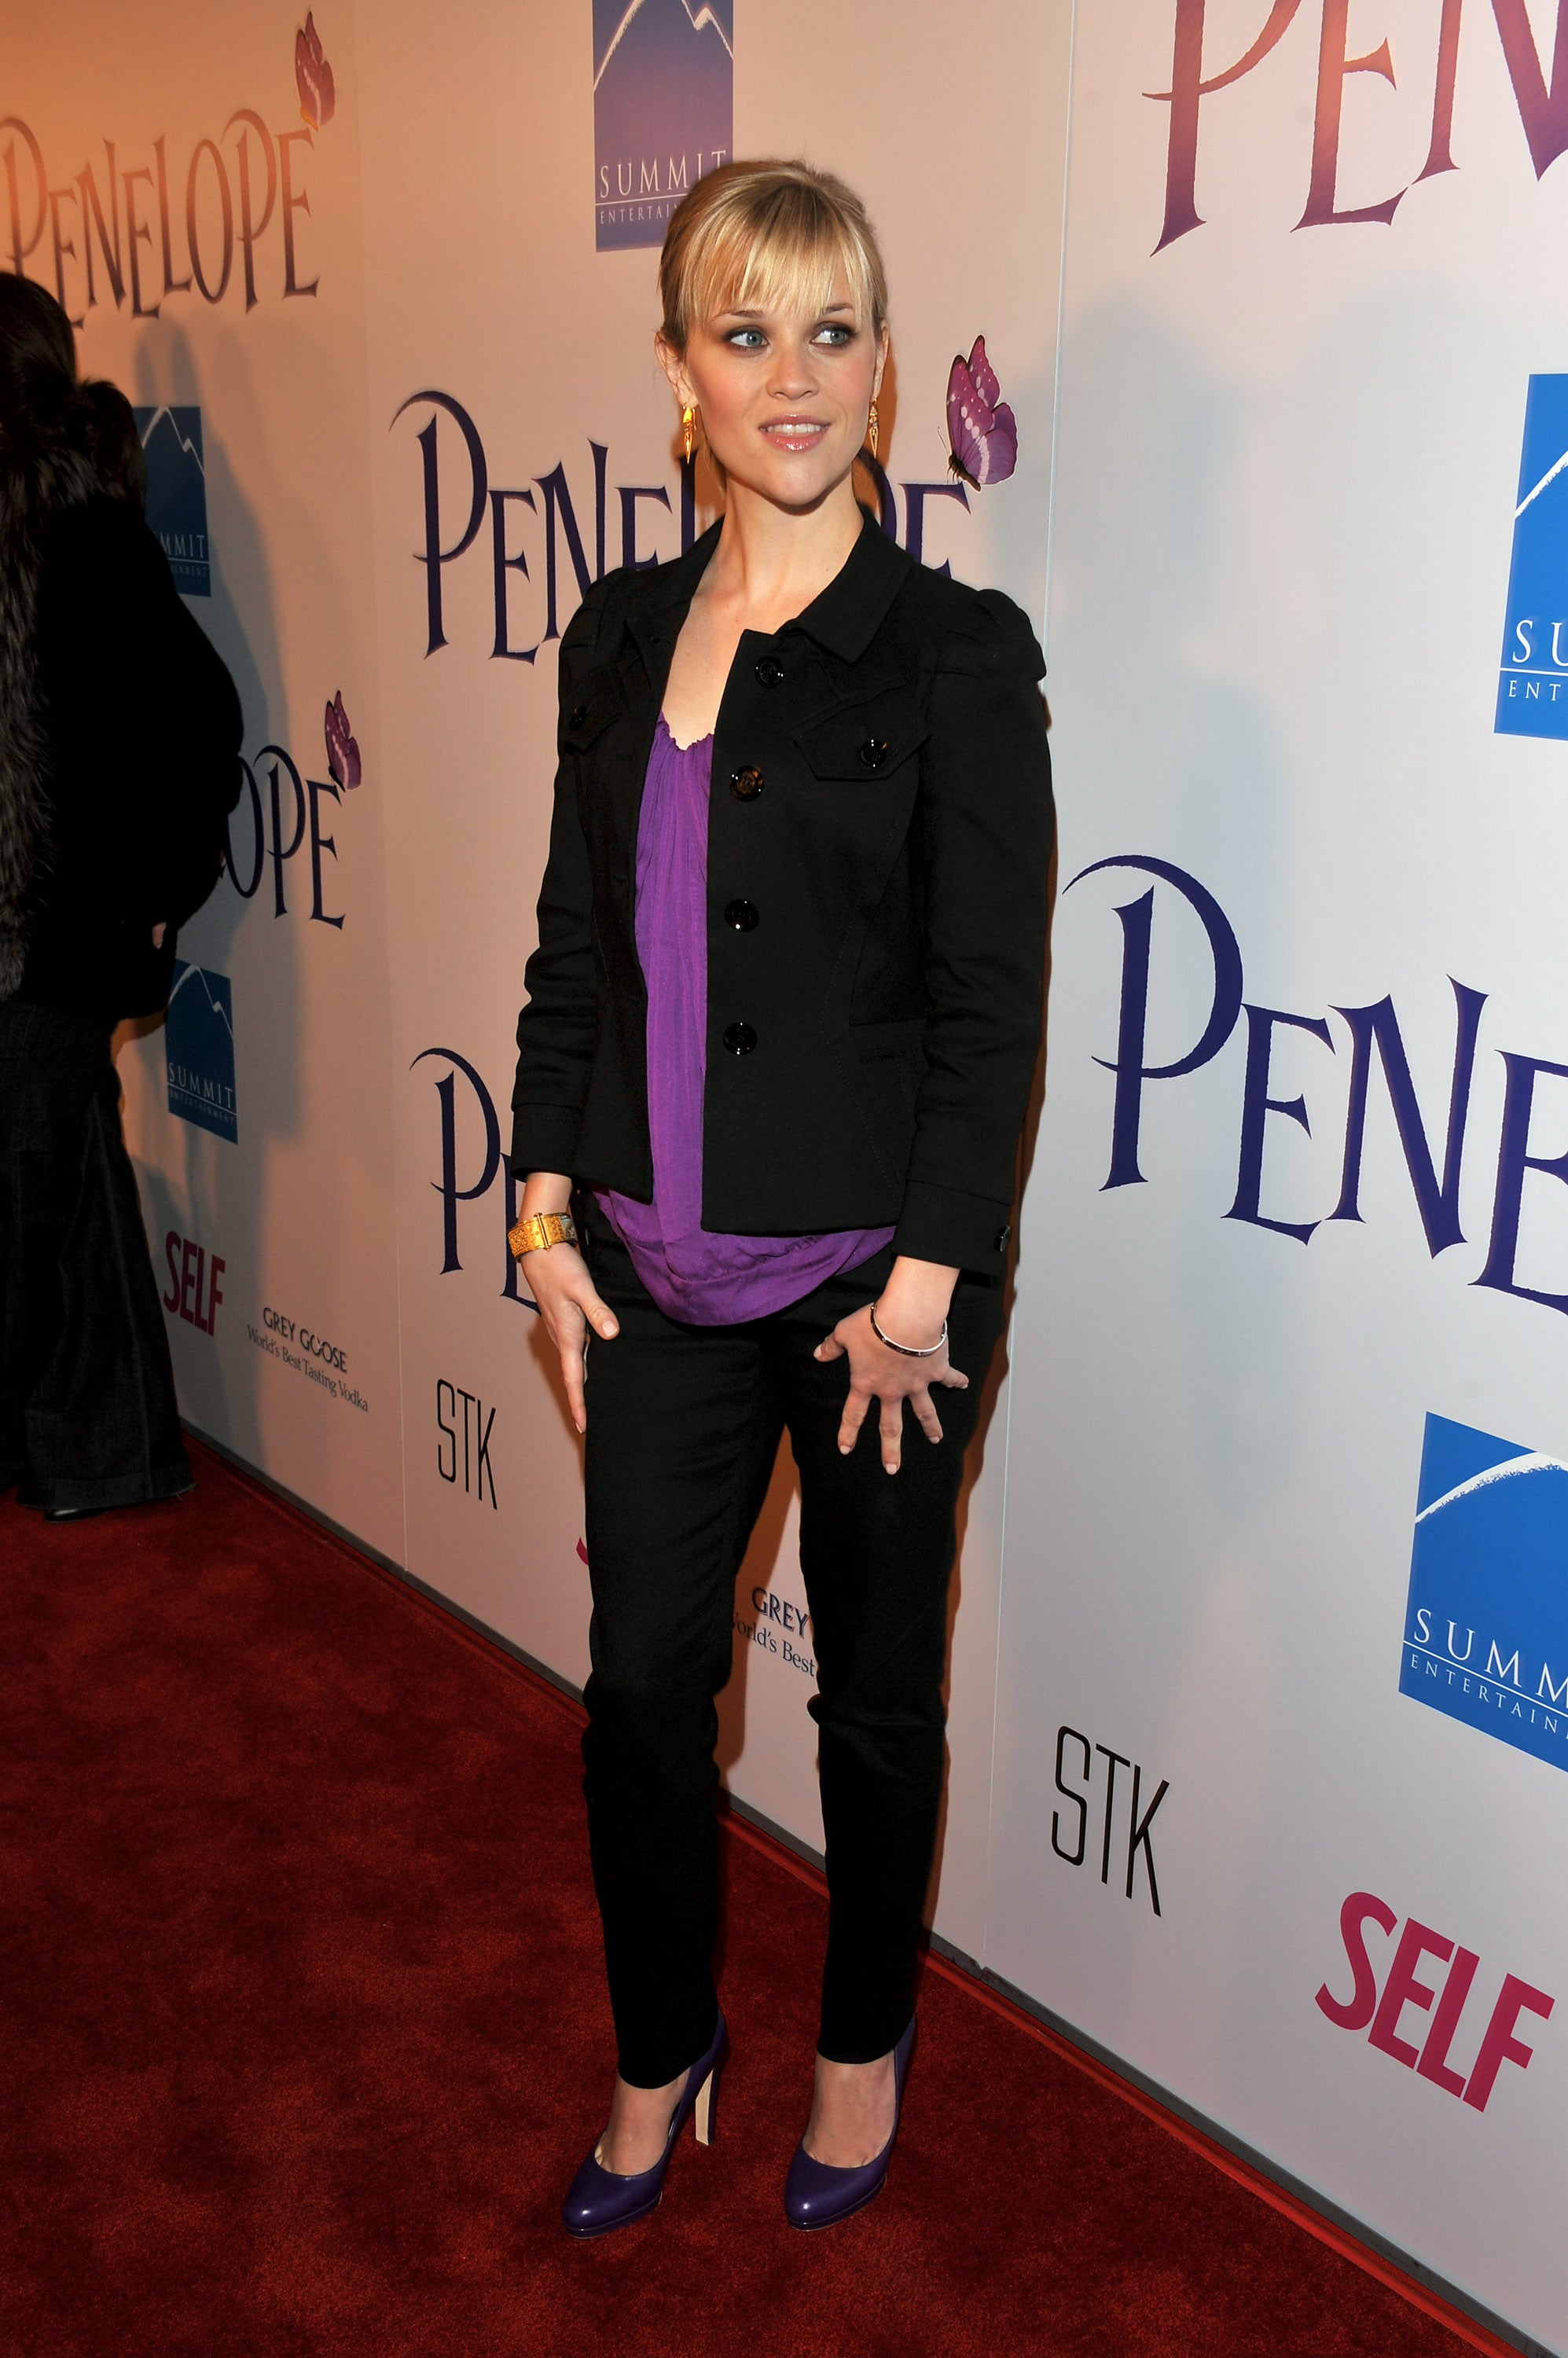 For the premiere of her production debut, Penelope, Reese went dressy casual in a purple tee, black pants, and a blazer.